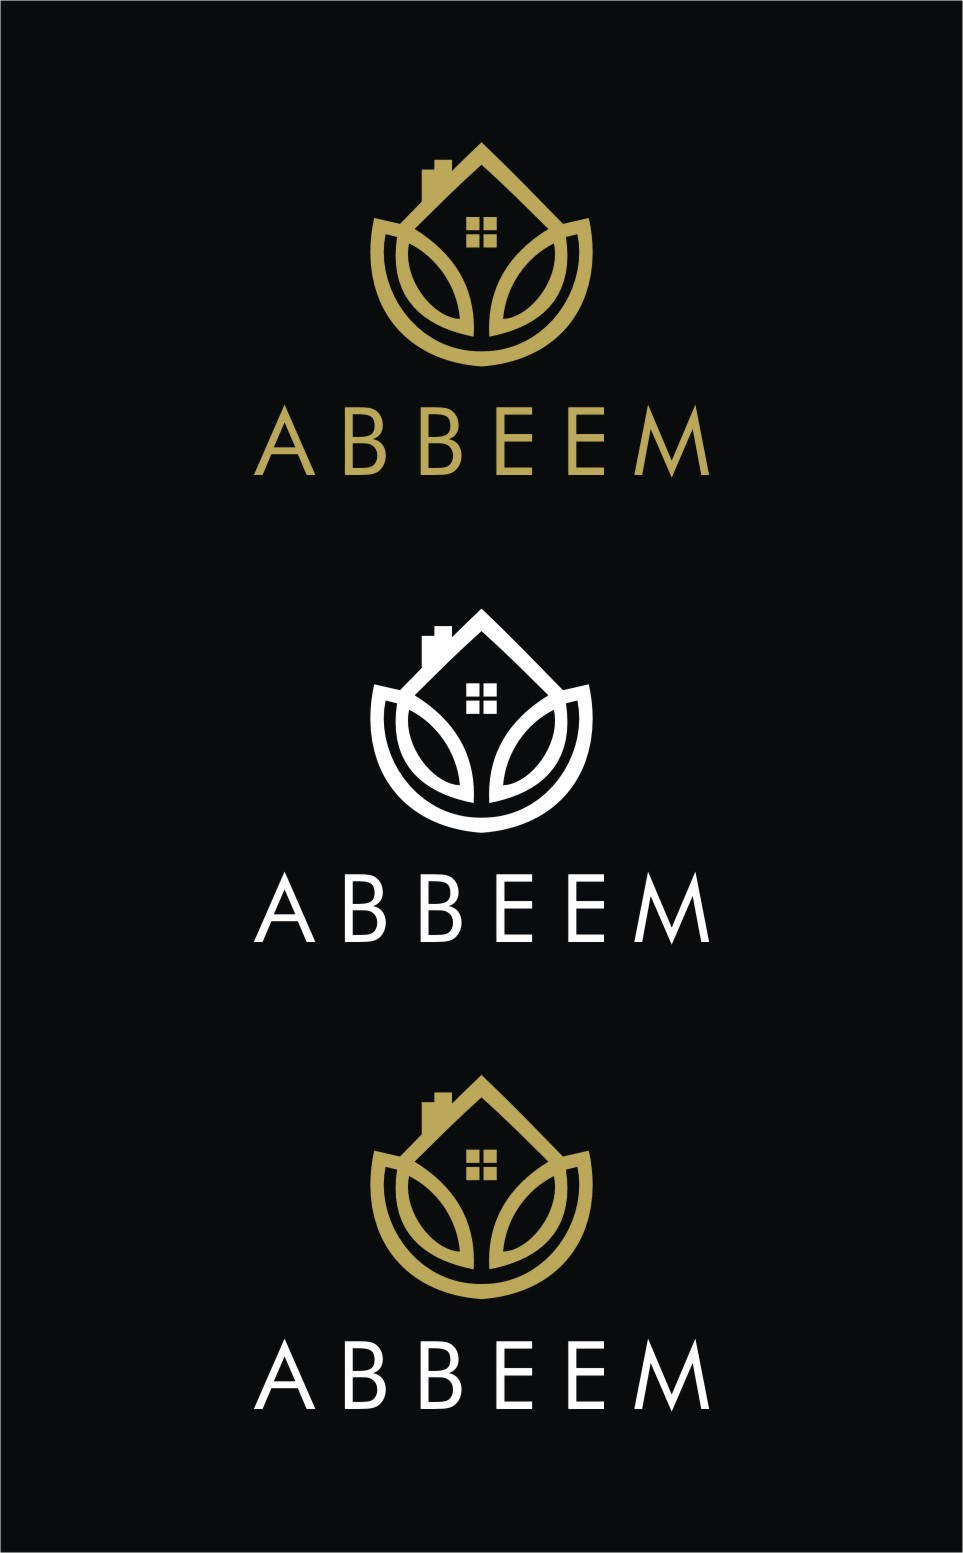 Logo Design by Spider Graphics - Entry No. 178 in the Logo Design Contest Luxury Logo Design for Abbeem.